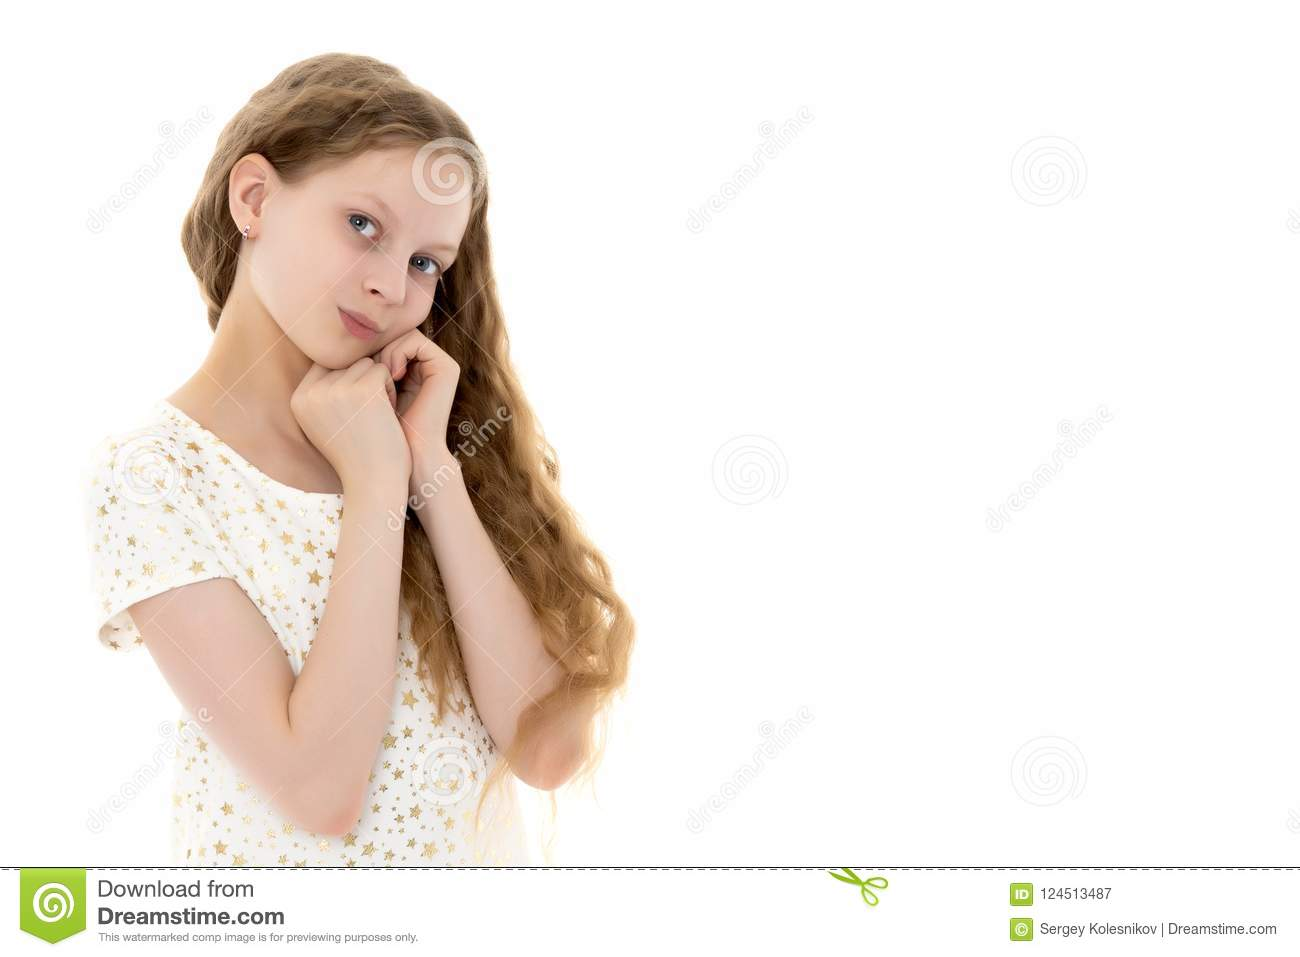 A Teenage Girl In A Short Dress. Stock Image - Image of computer ... 80a20195d97d